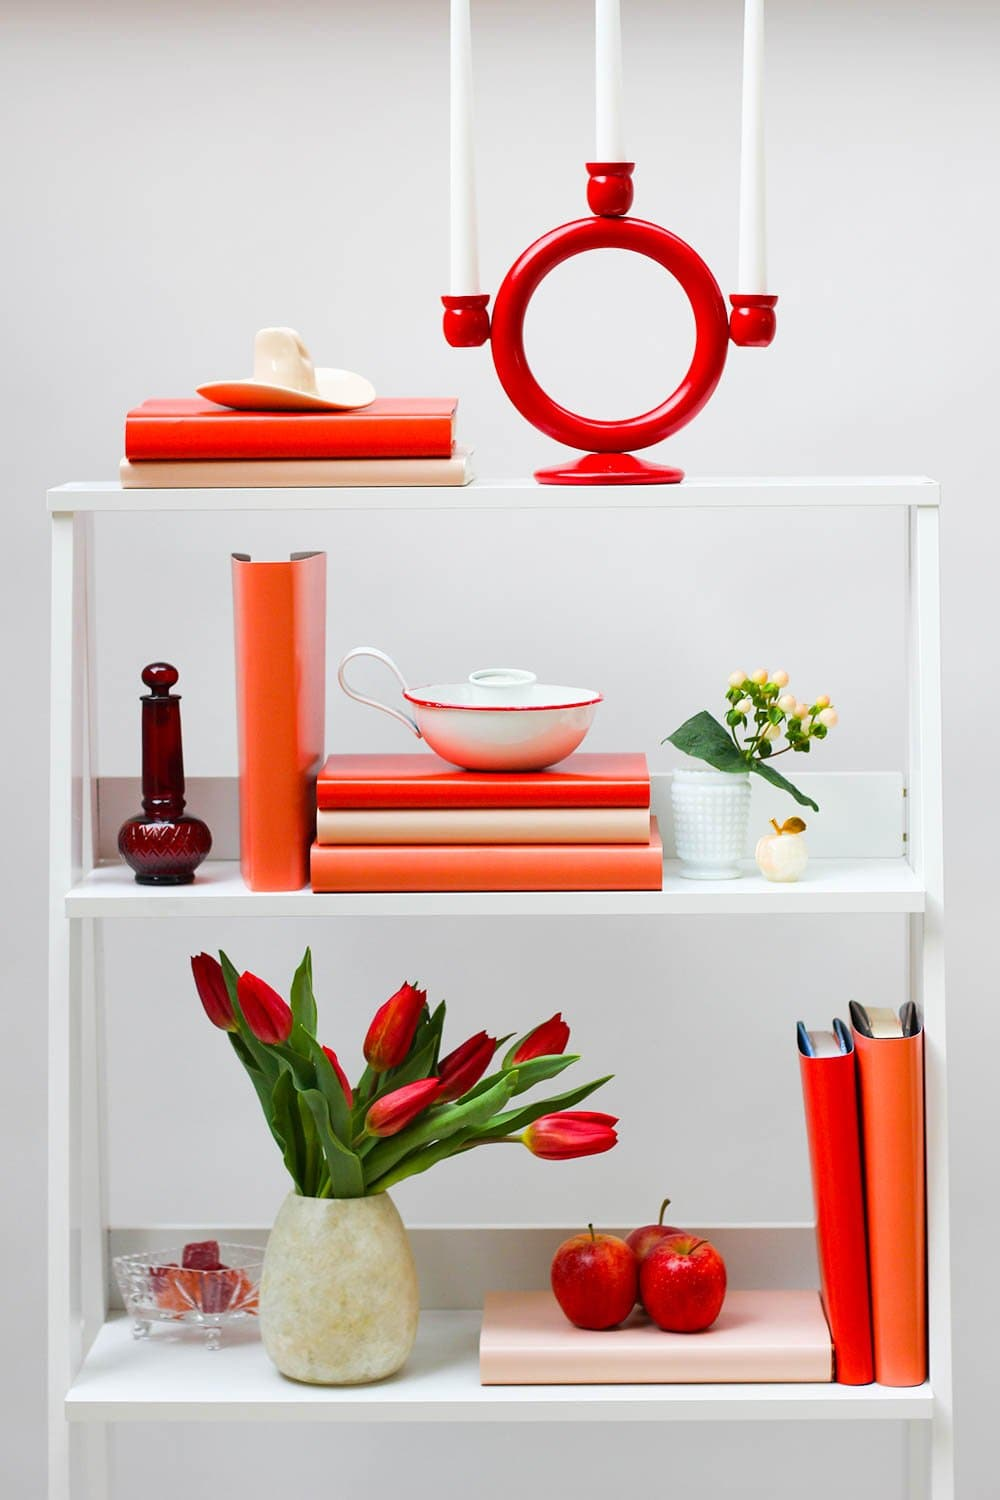 Styled red book shelf with red books from red book covers